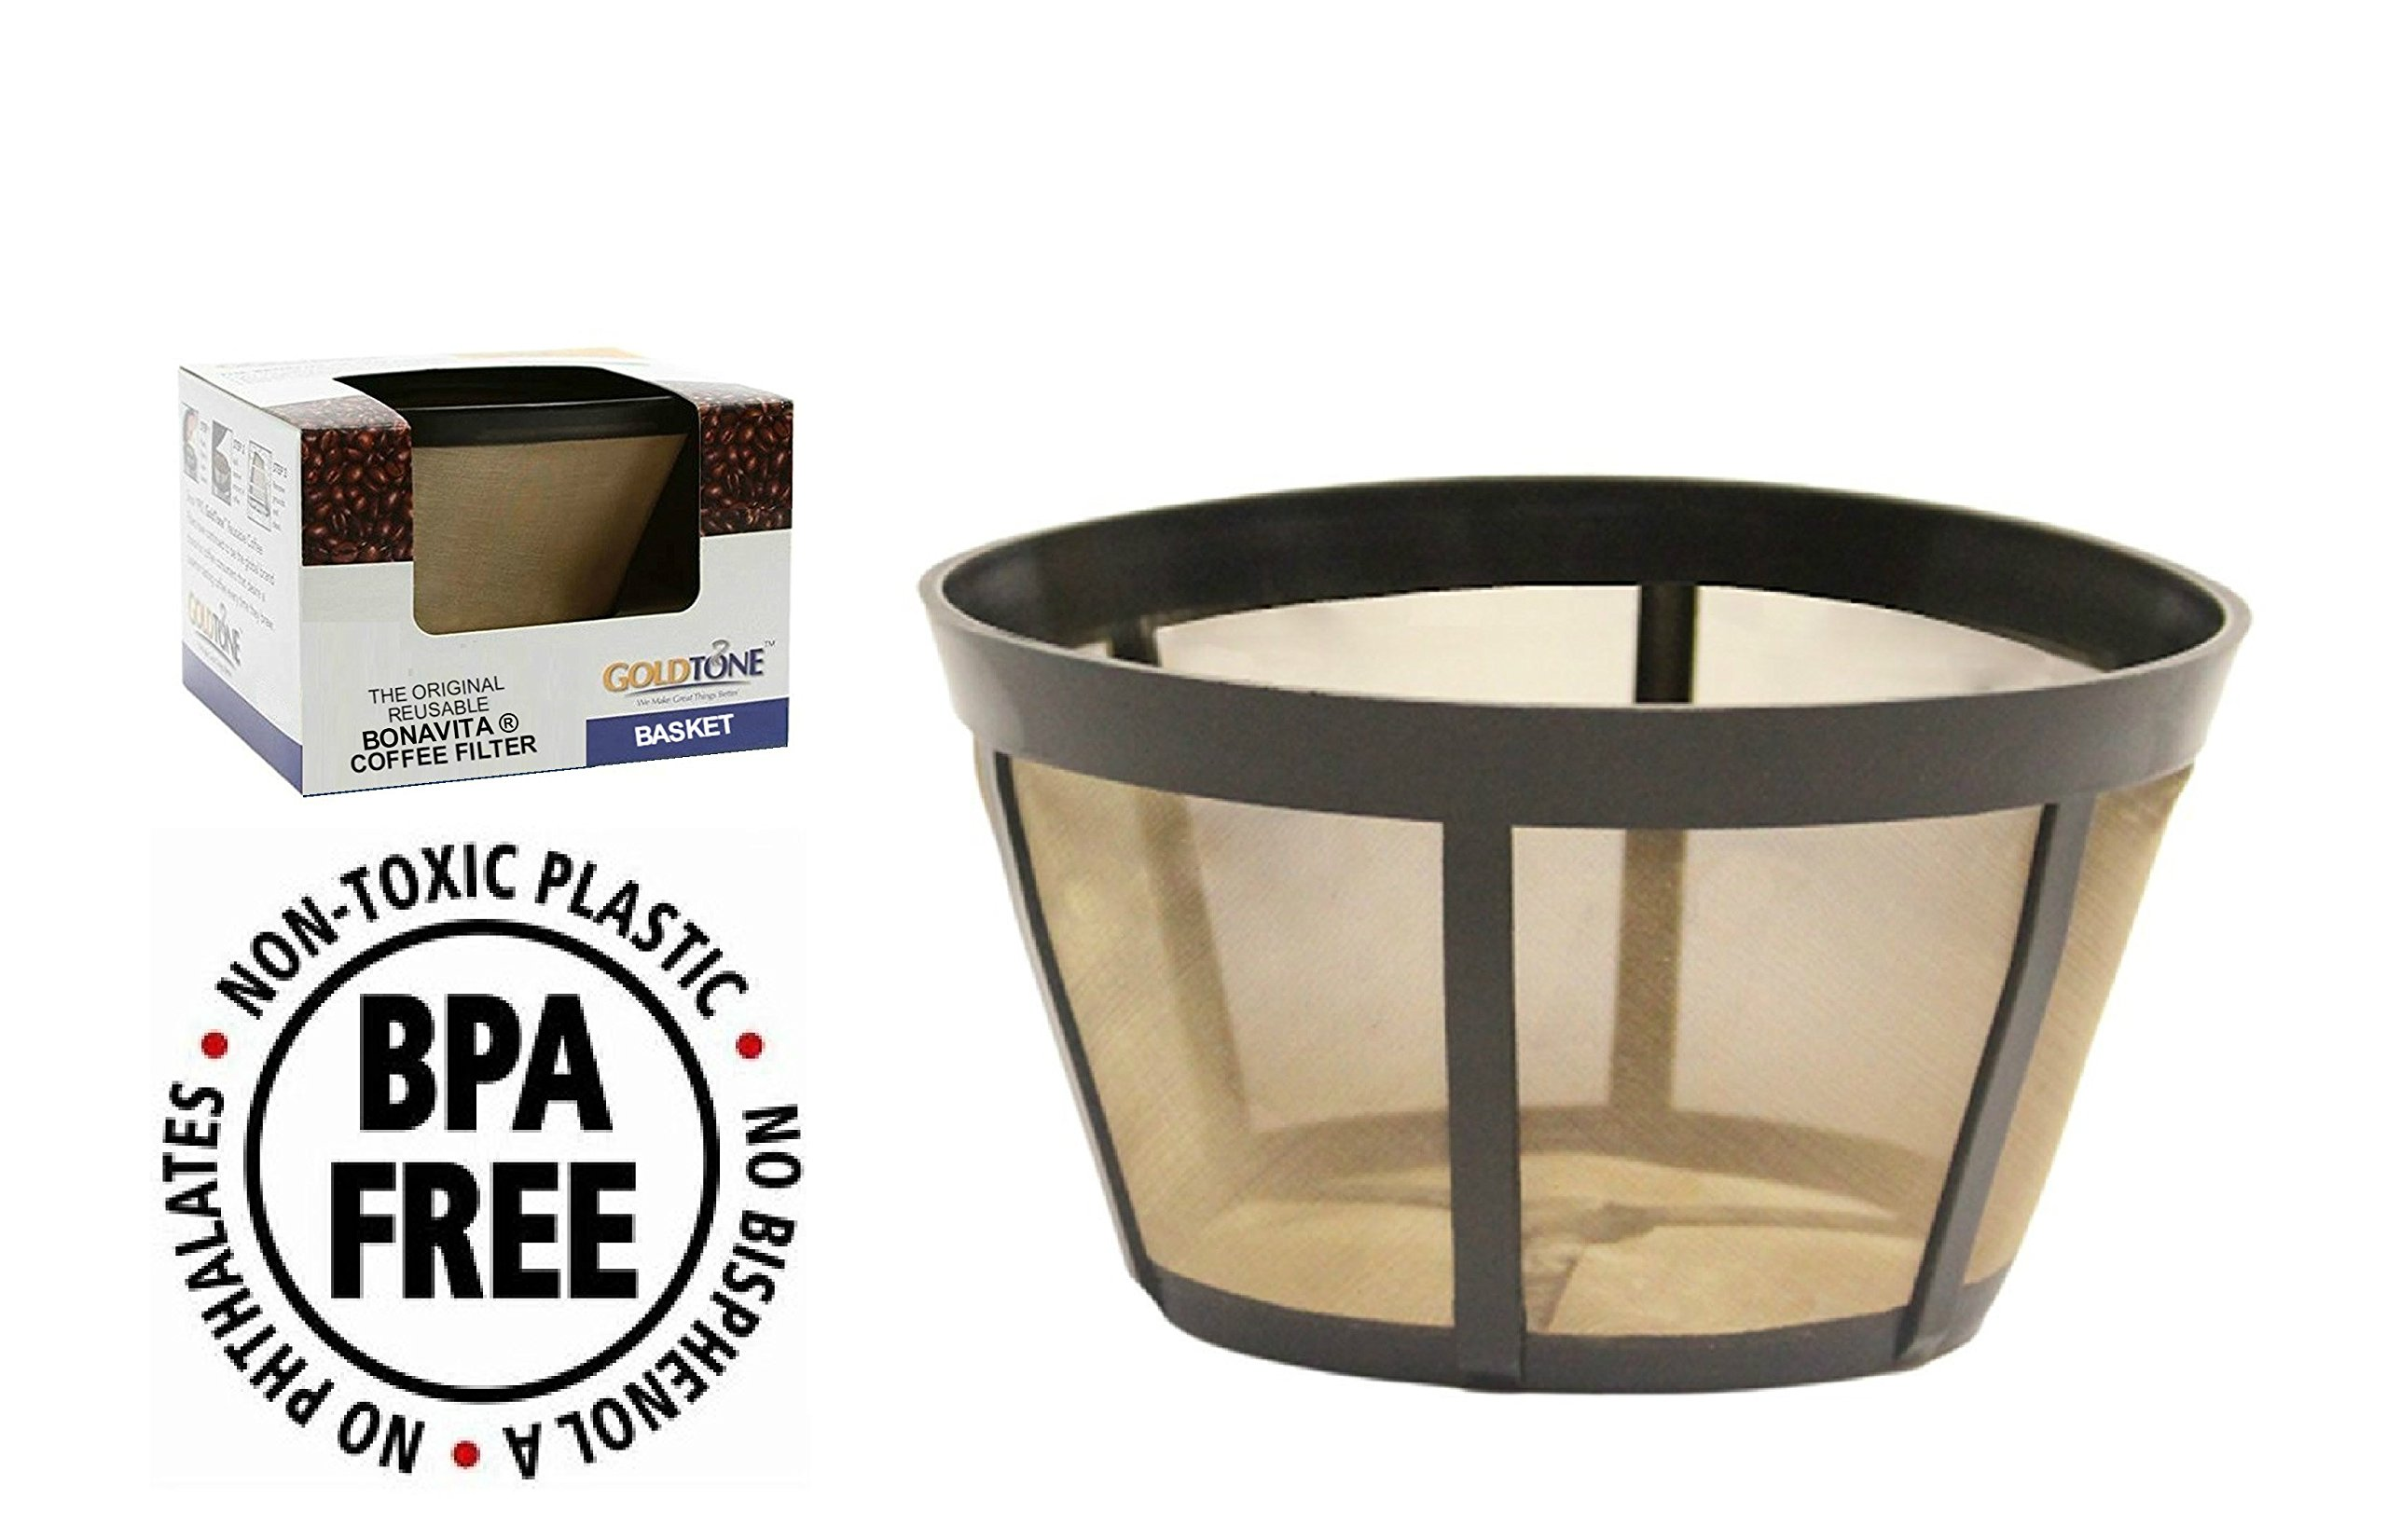 GoldTone Brand Reusable Basket Filter fits Bonavita Coffee Makers and Brewers. Replaces your Bonavita Coffee Filter and Bonavita Reusable Coffe Filter